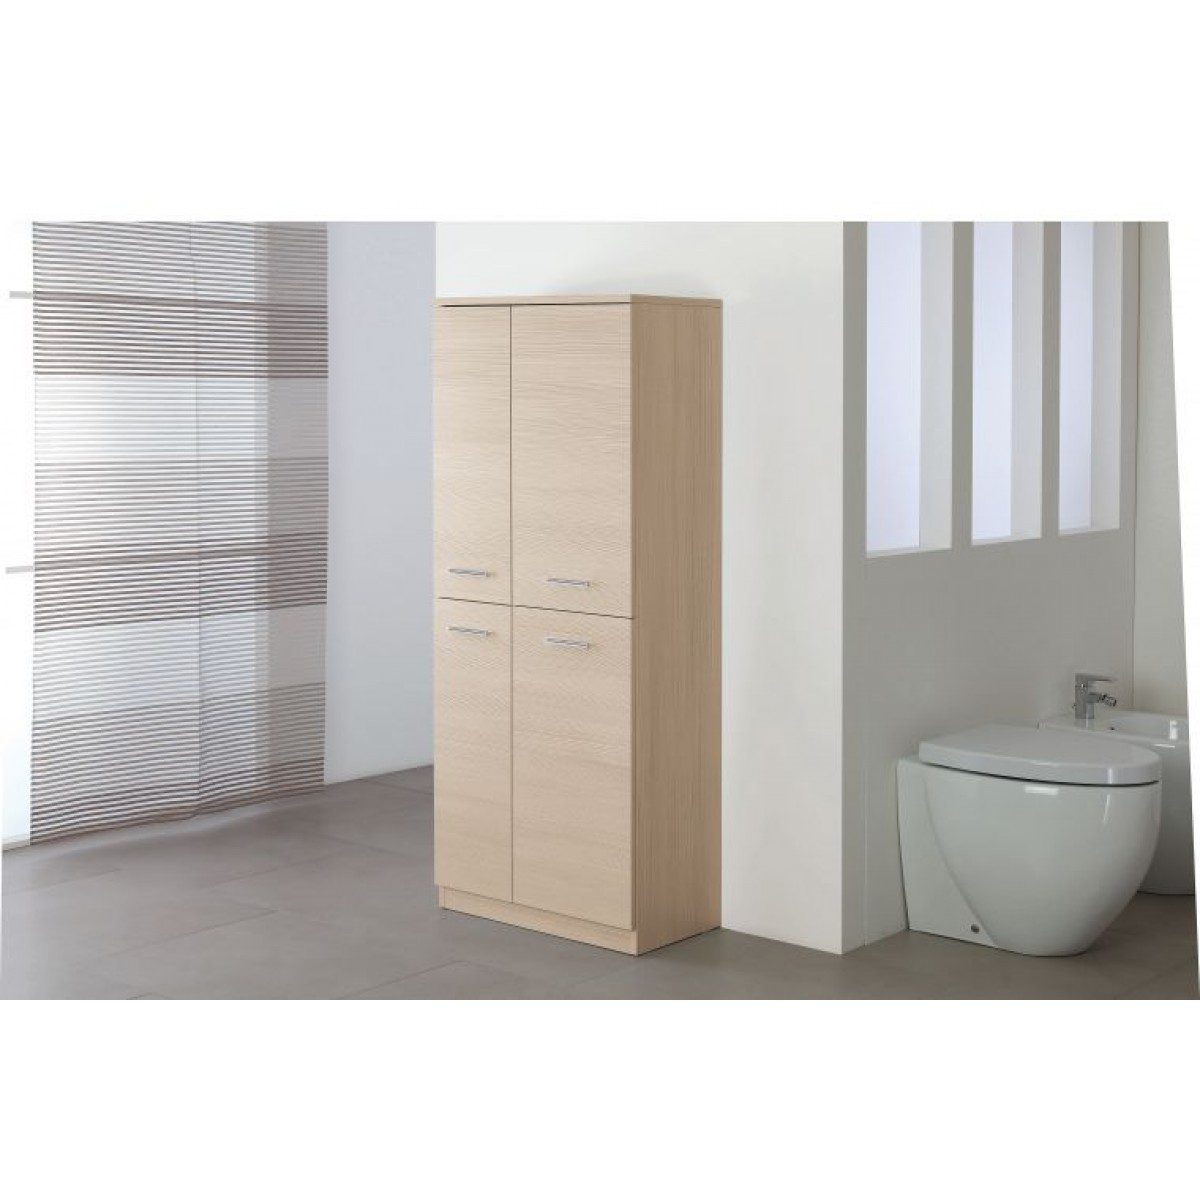 Armadio portabiancheria bagno moderno color larice cm for Colonna armadio bagno